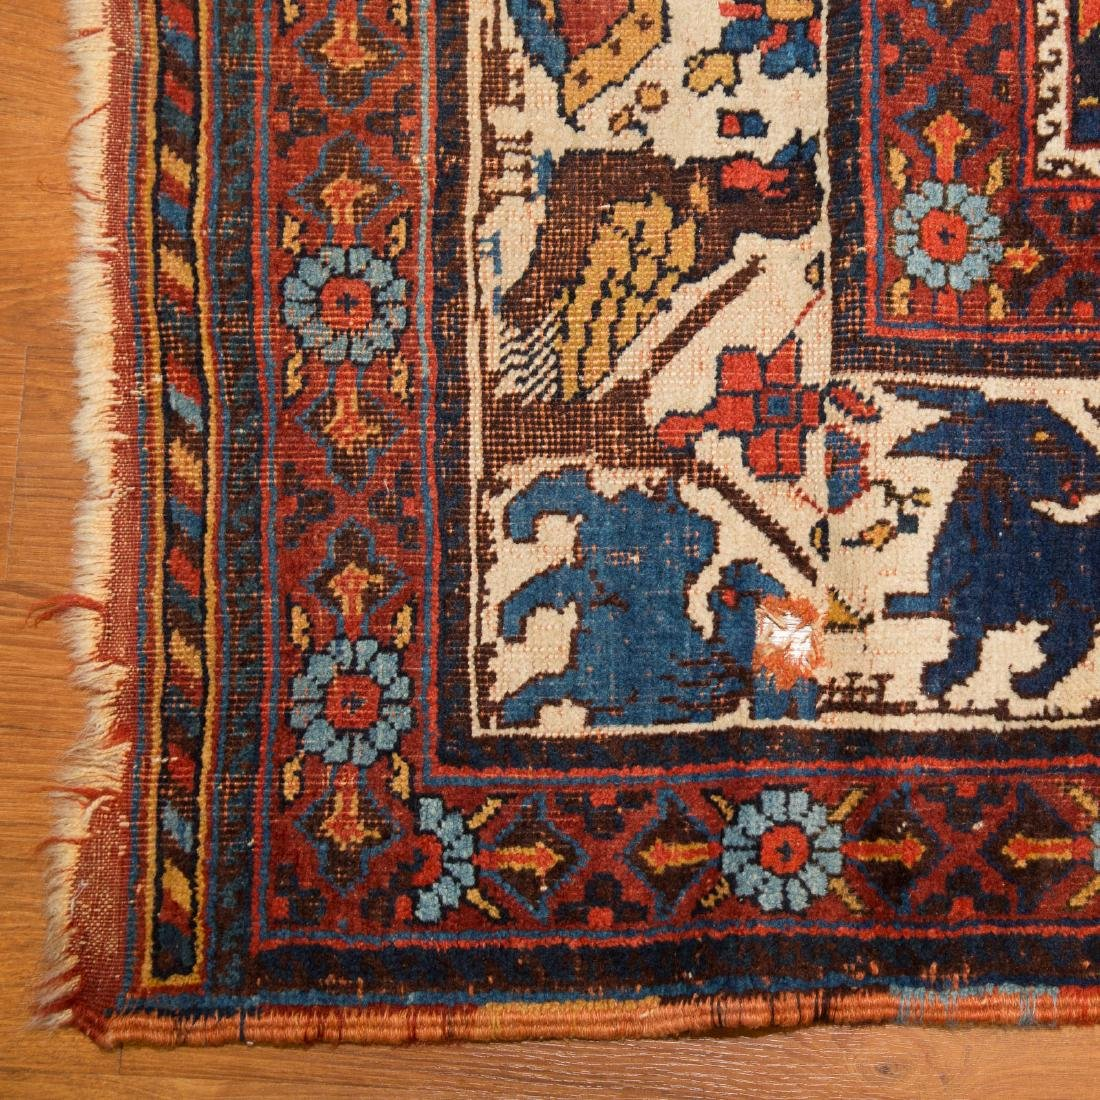 Antique Kashkai rug, approx. 7 x 12.6 - 2